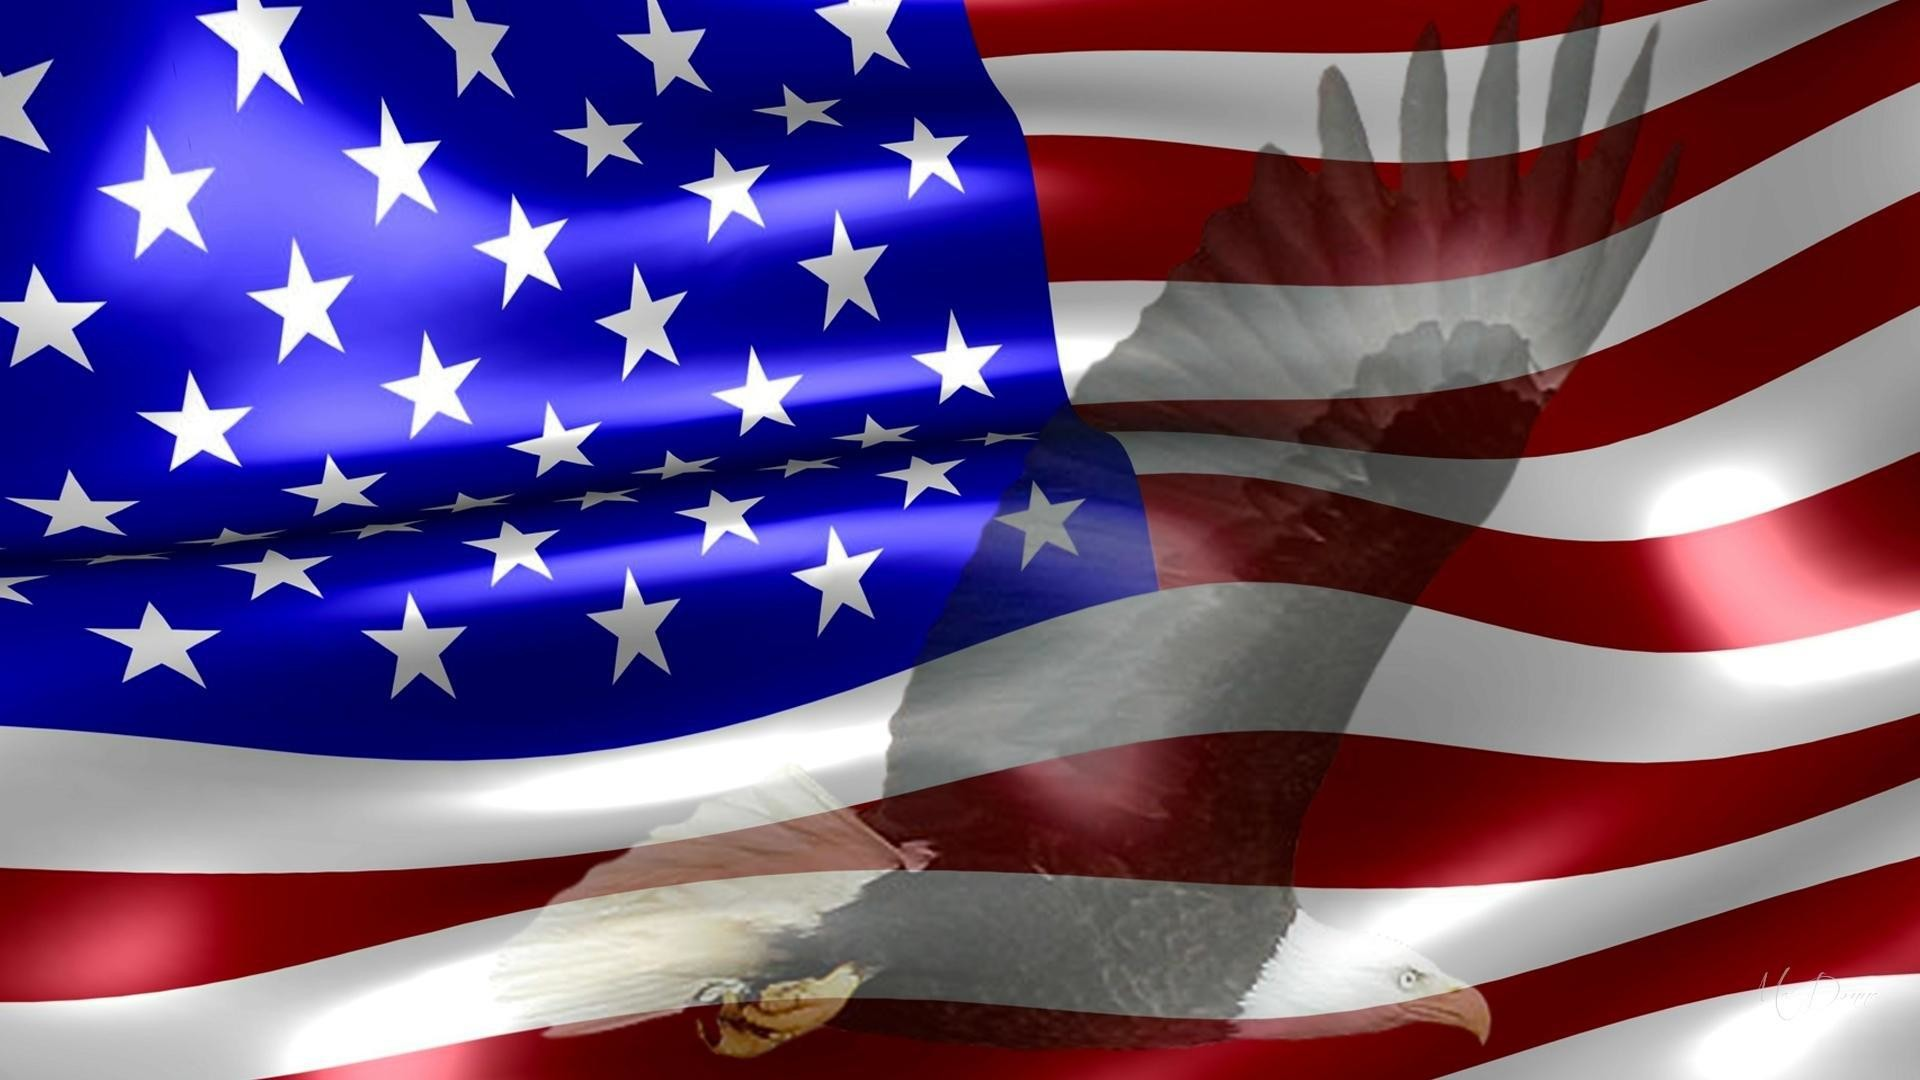 American Flag Wallpaper 1920x1080 (61+ images)